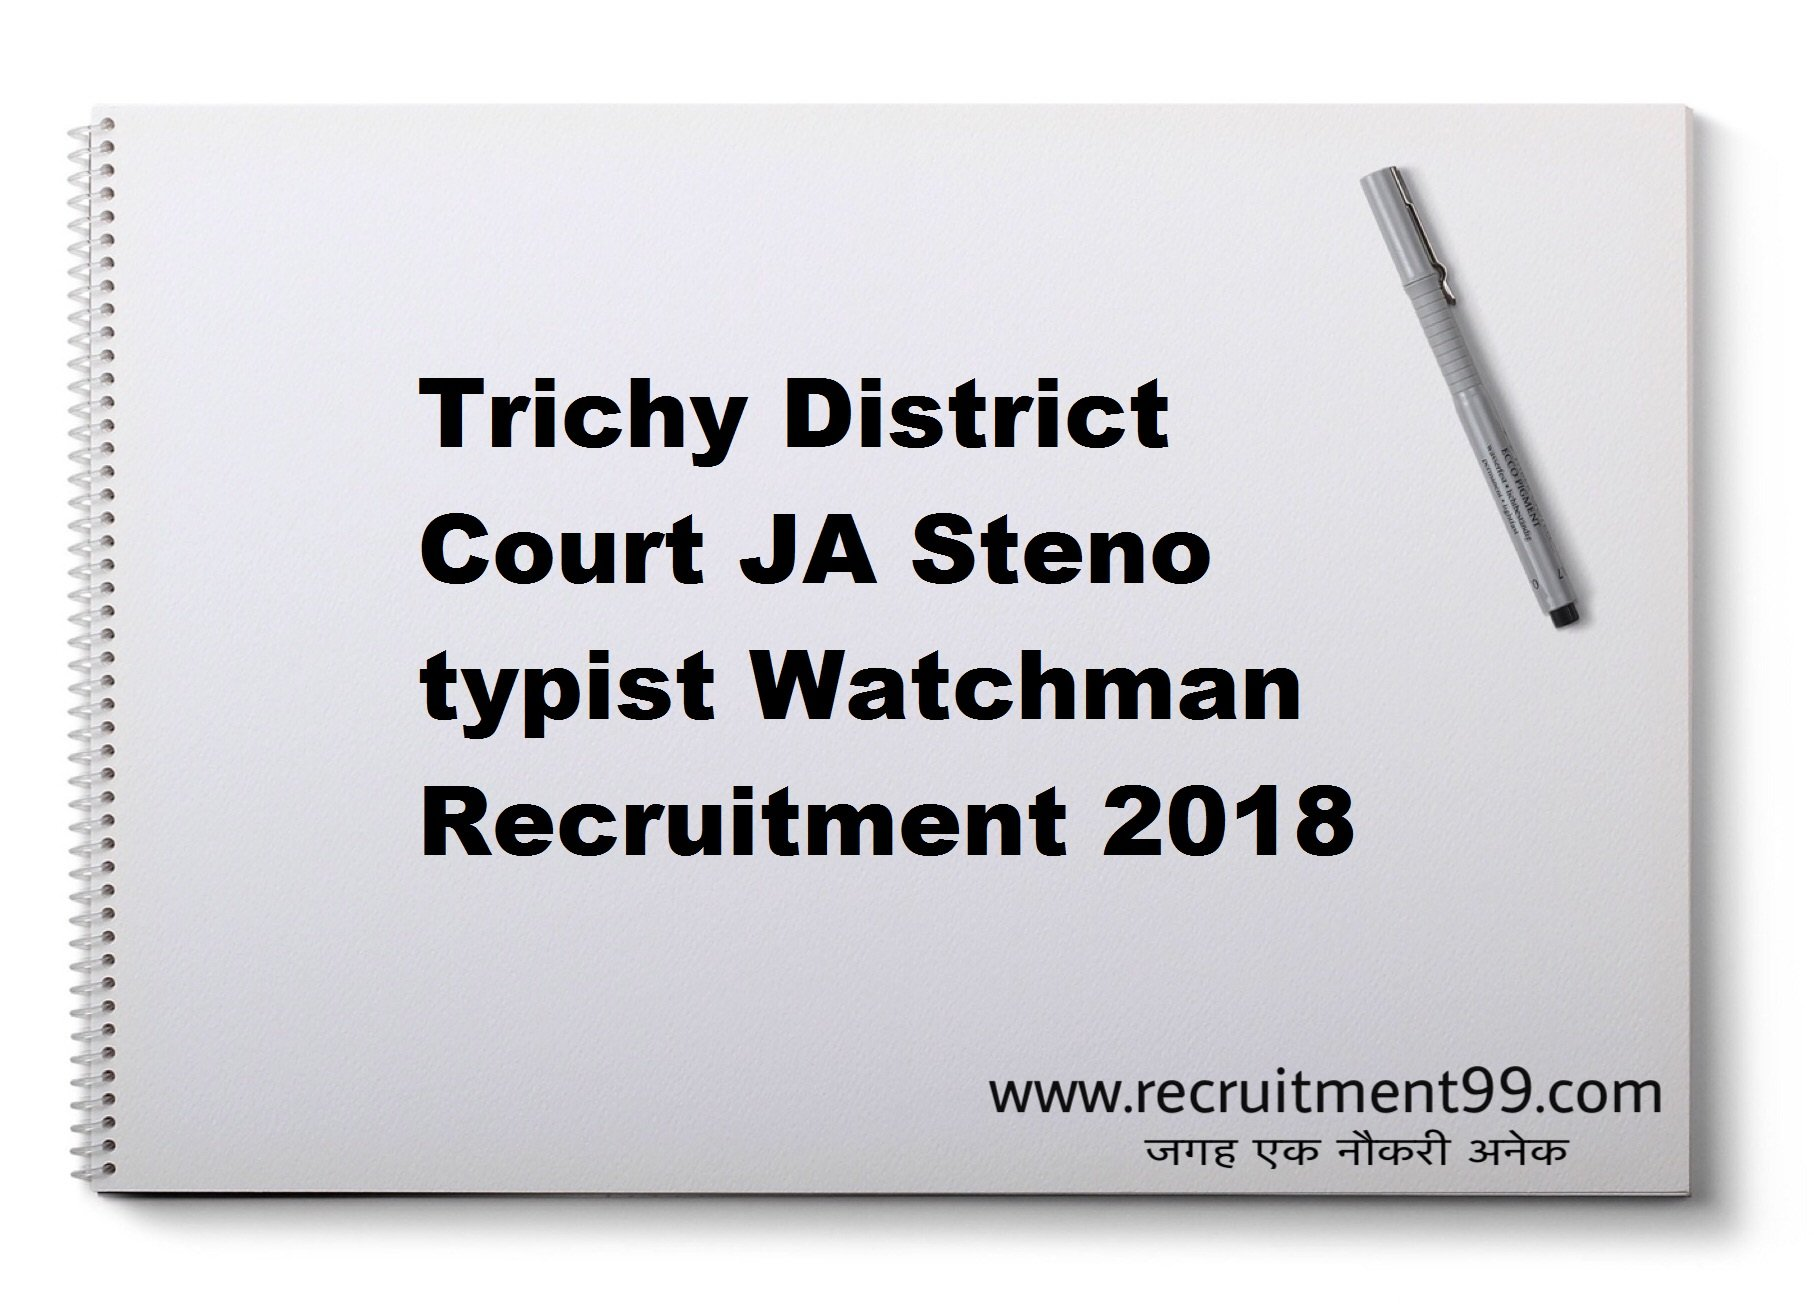 Trichy District Court JA Steno typist Watchman Recruitment Hall Ticket Result 2018